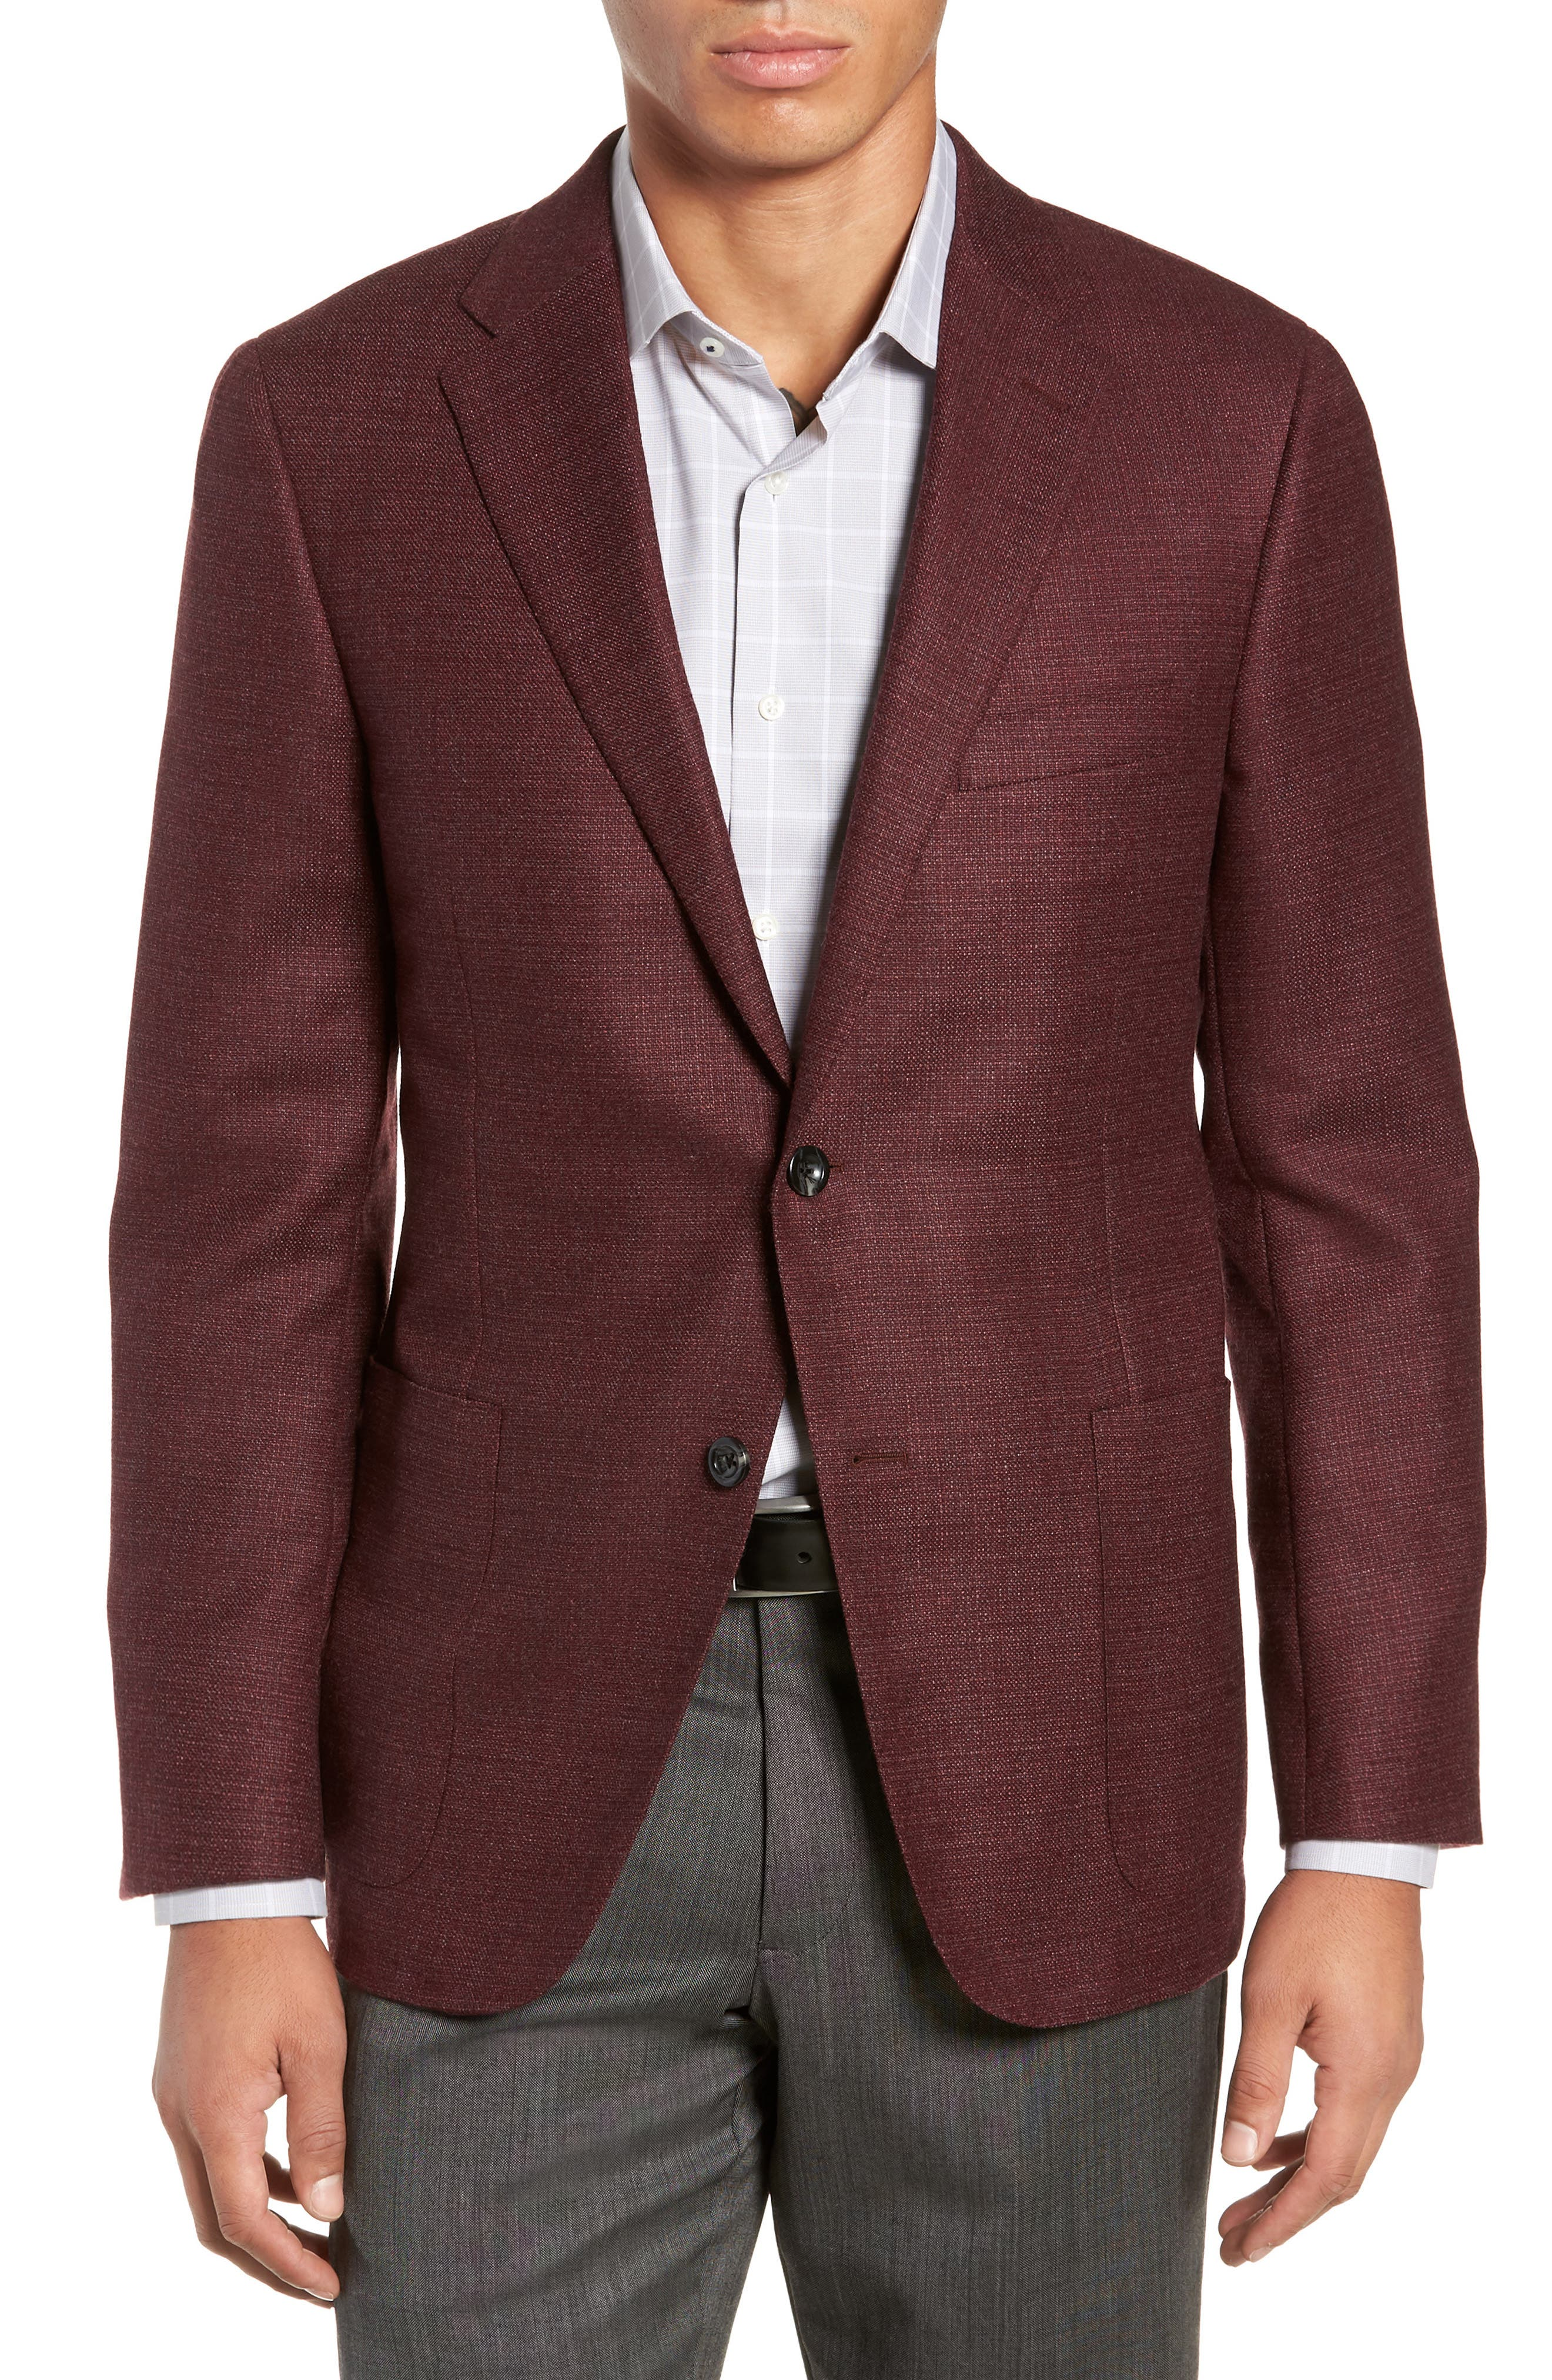 Weightless Classic Fit Wool & Silk Sport Coat,                             Main thumbnail 1, color,                             BURGUNDY